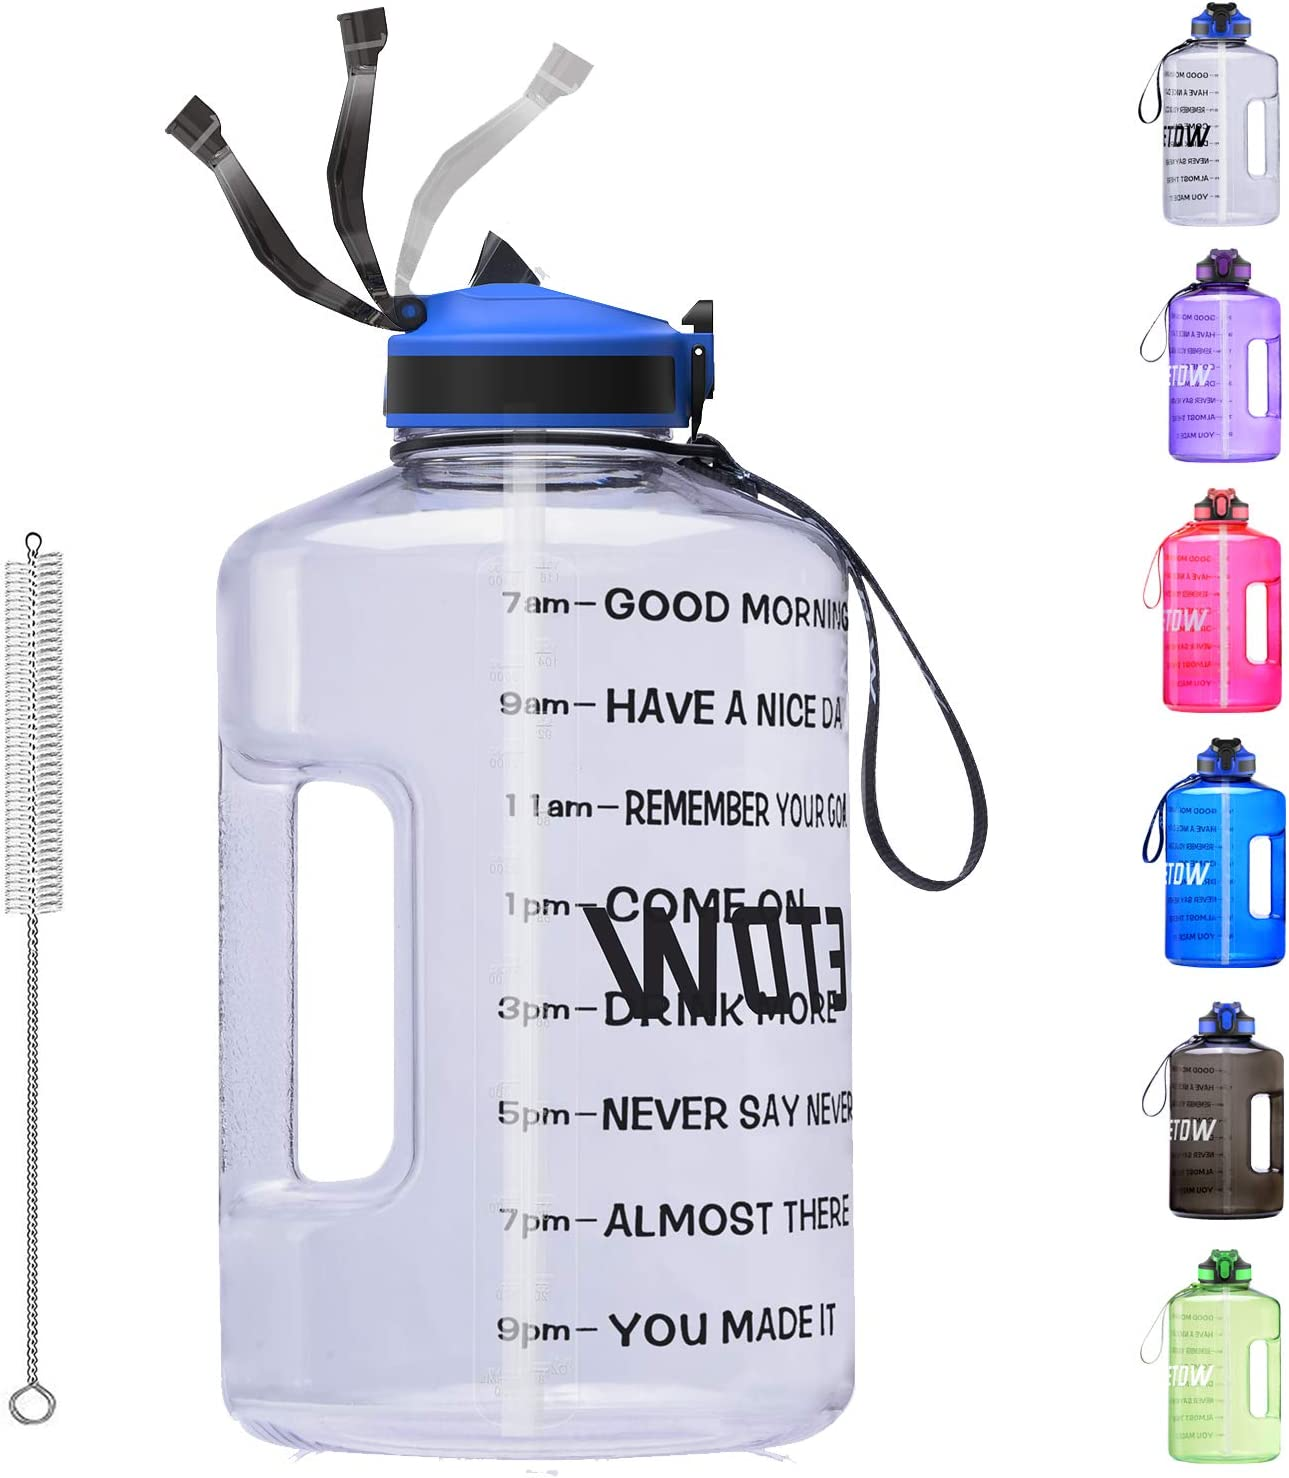 128oz BPA Free Motivational Large Water Jug Leak Proof Huge Water Container with Handle Pop Up Open for Gym Camping Sports Black ETDW 1 Gallon Water Bottle with Time Marker and Straw